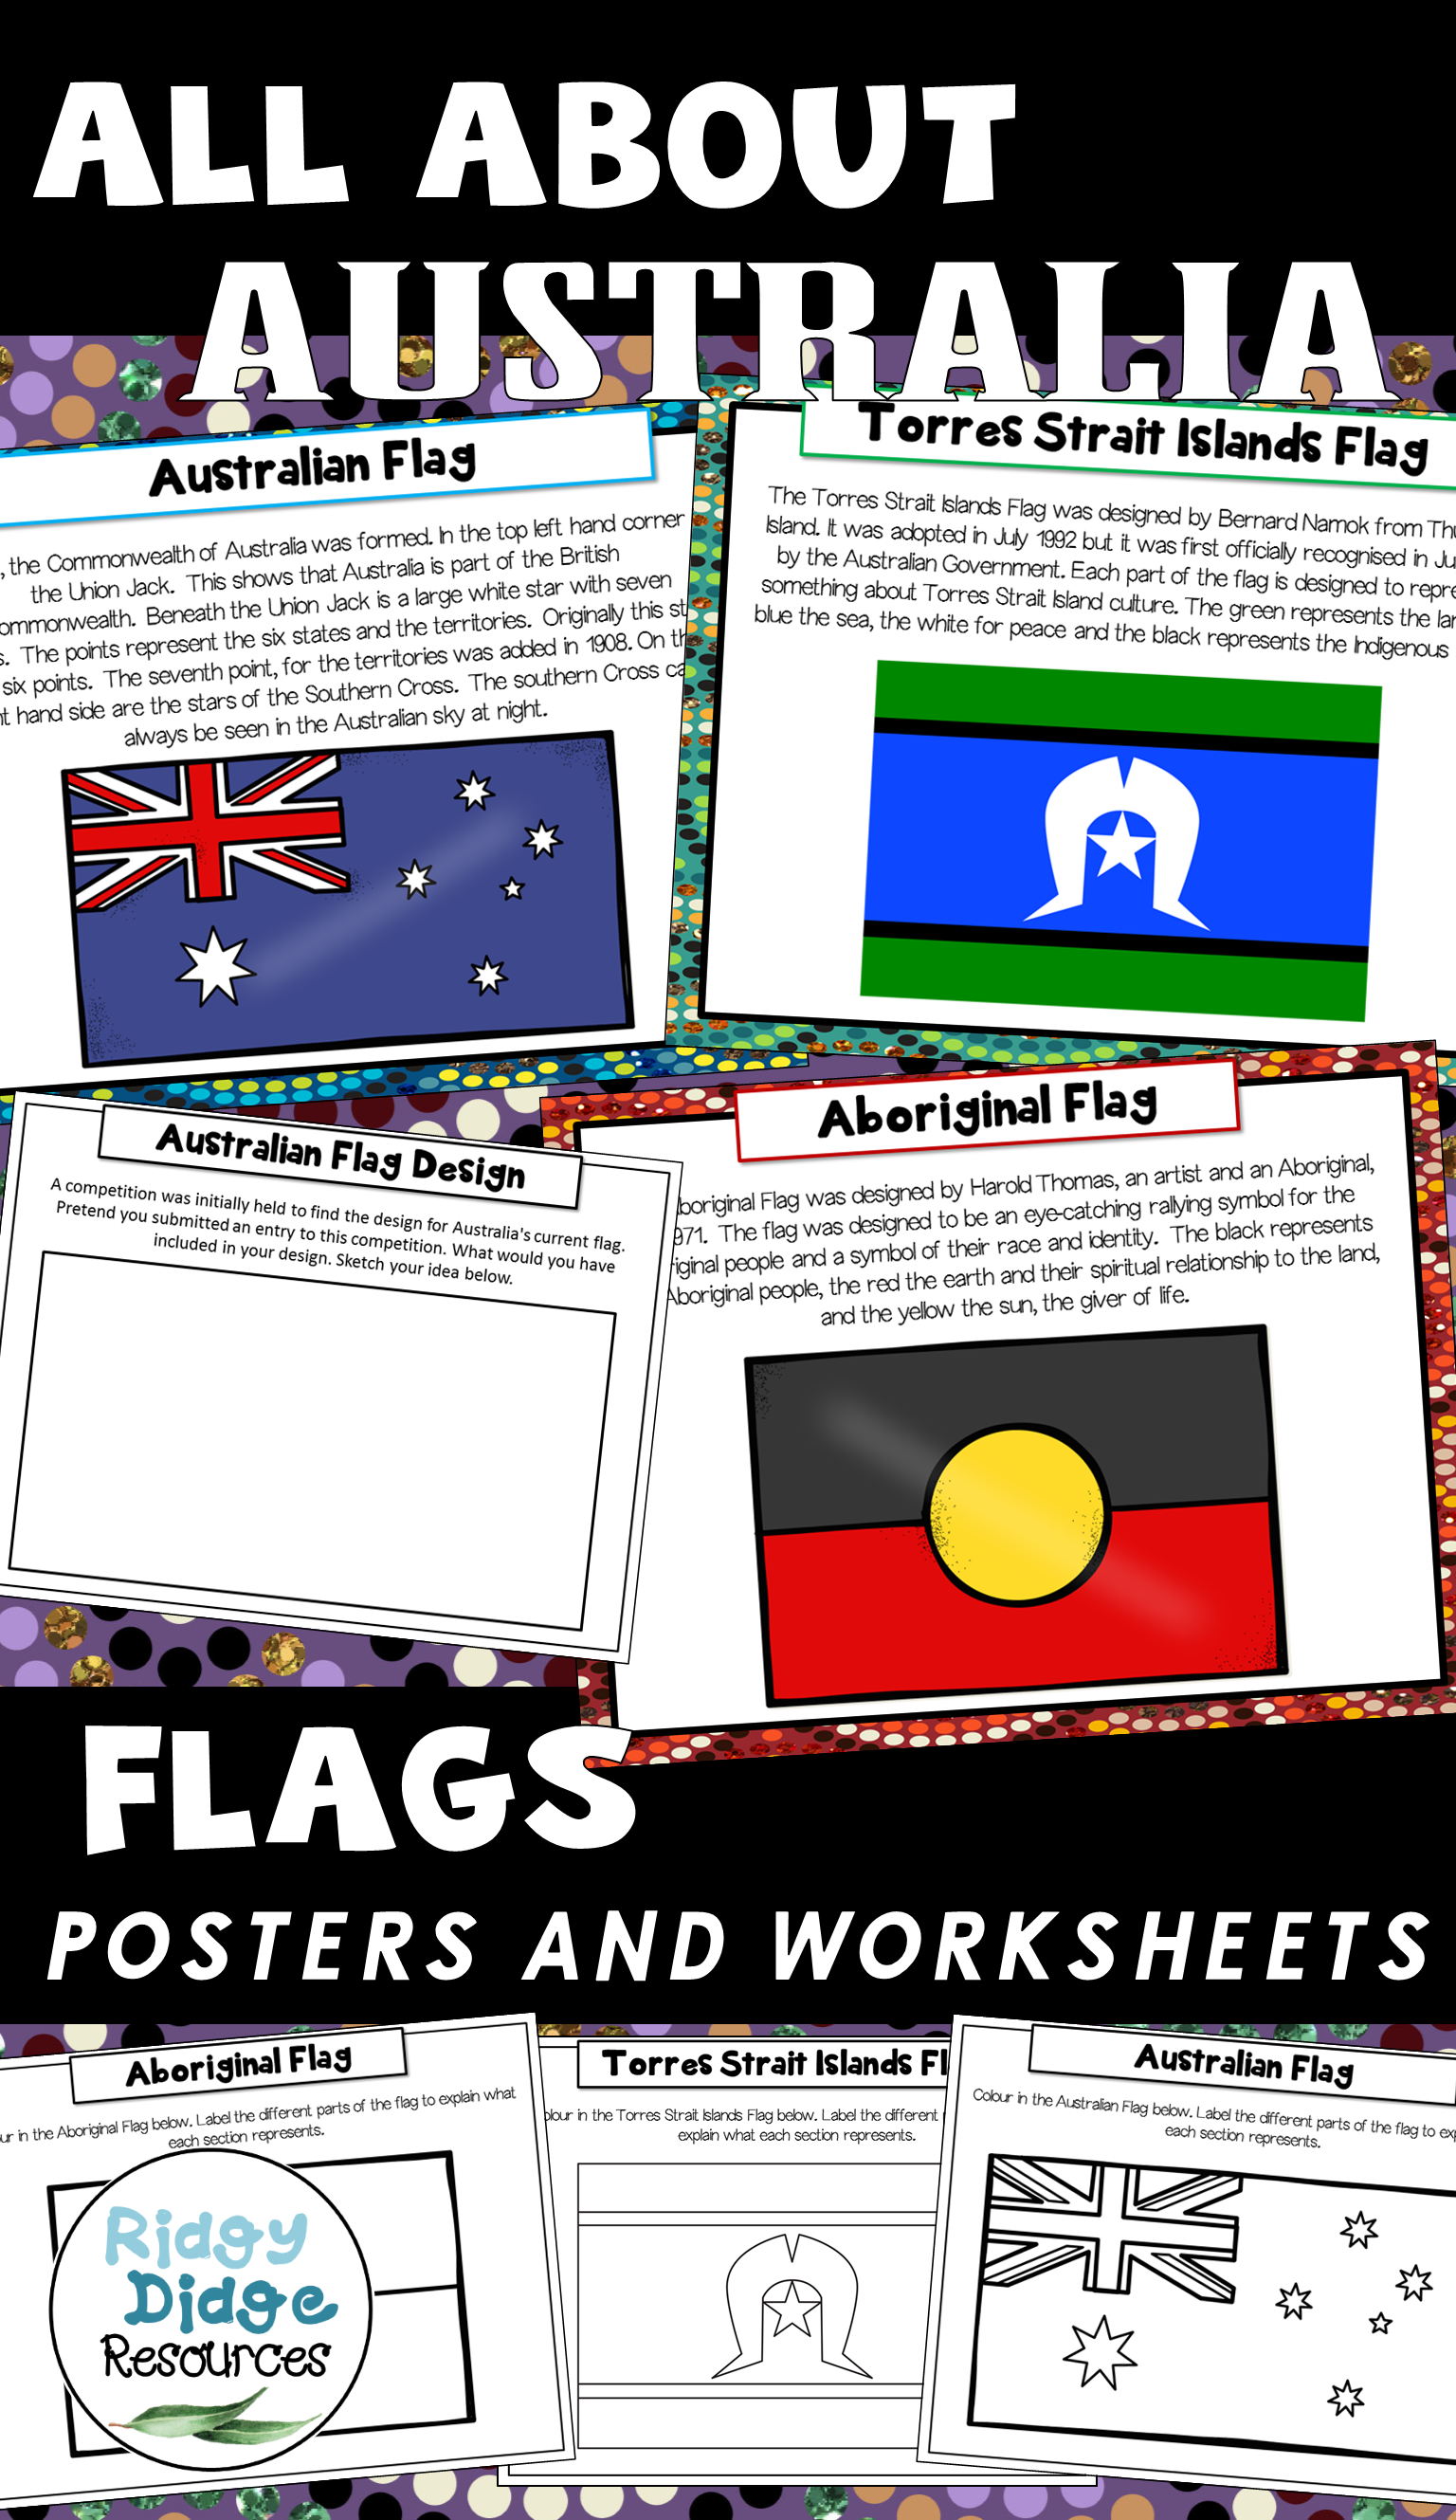 Australian Flags Posters And Worksheets